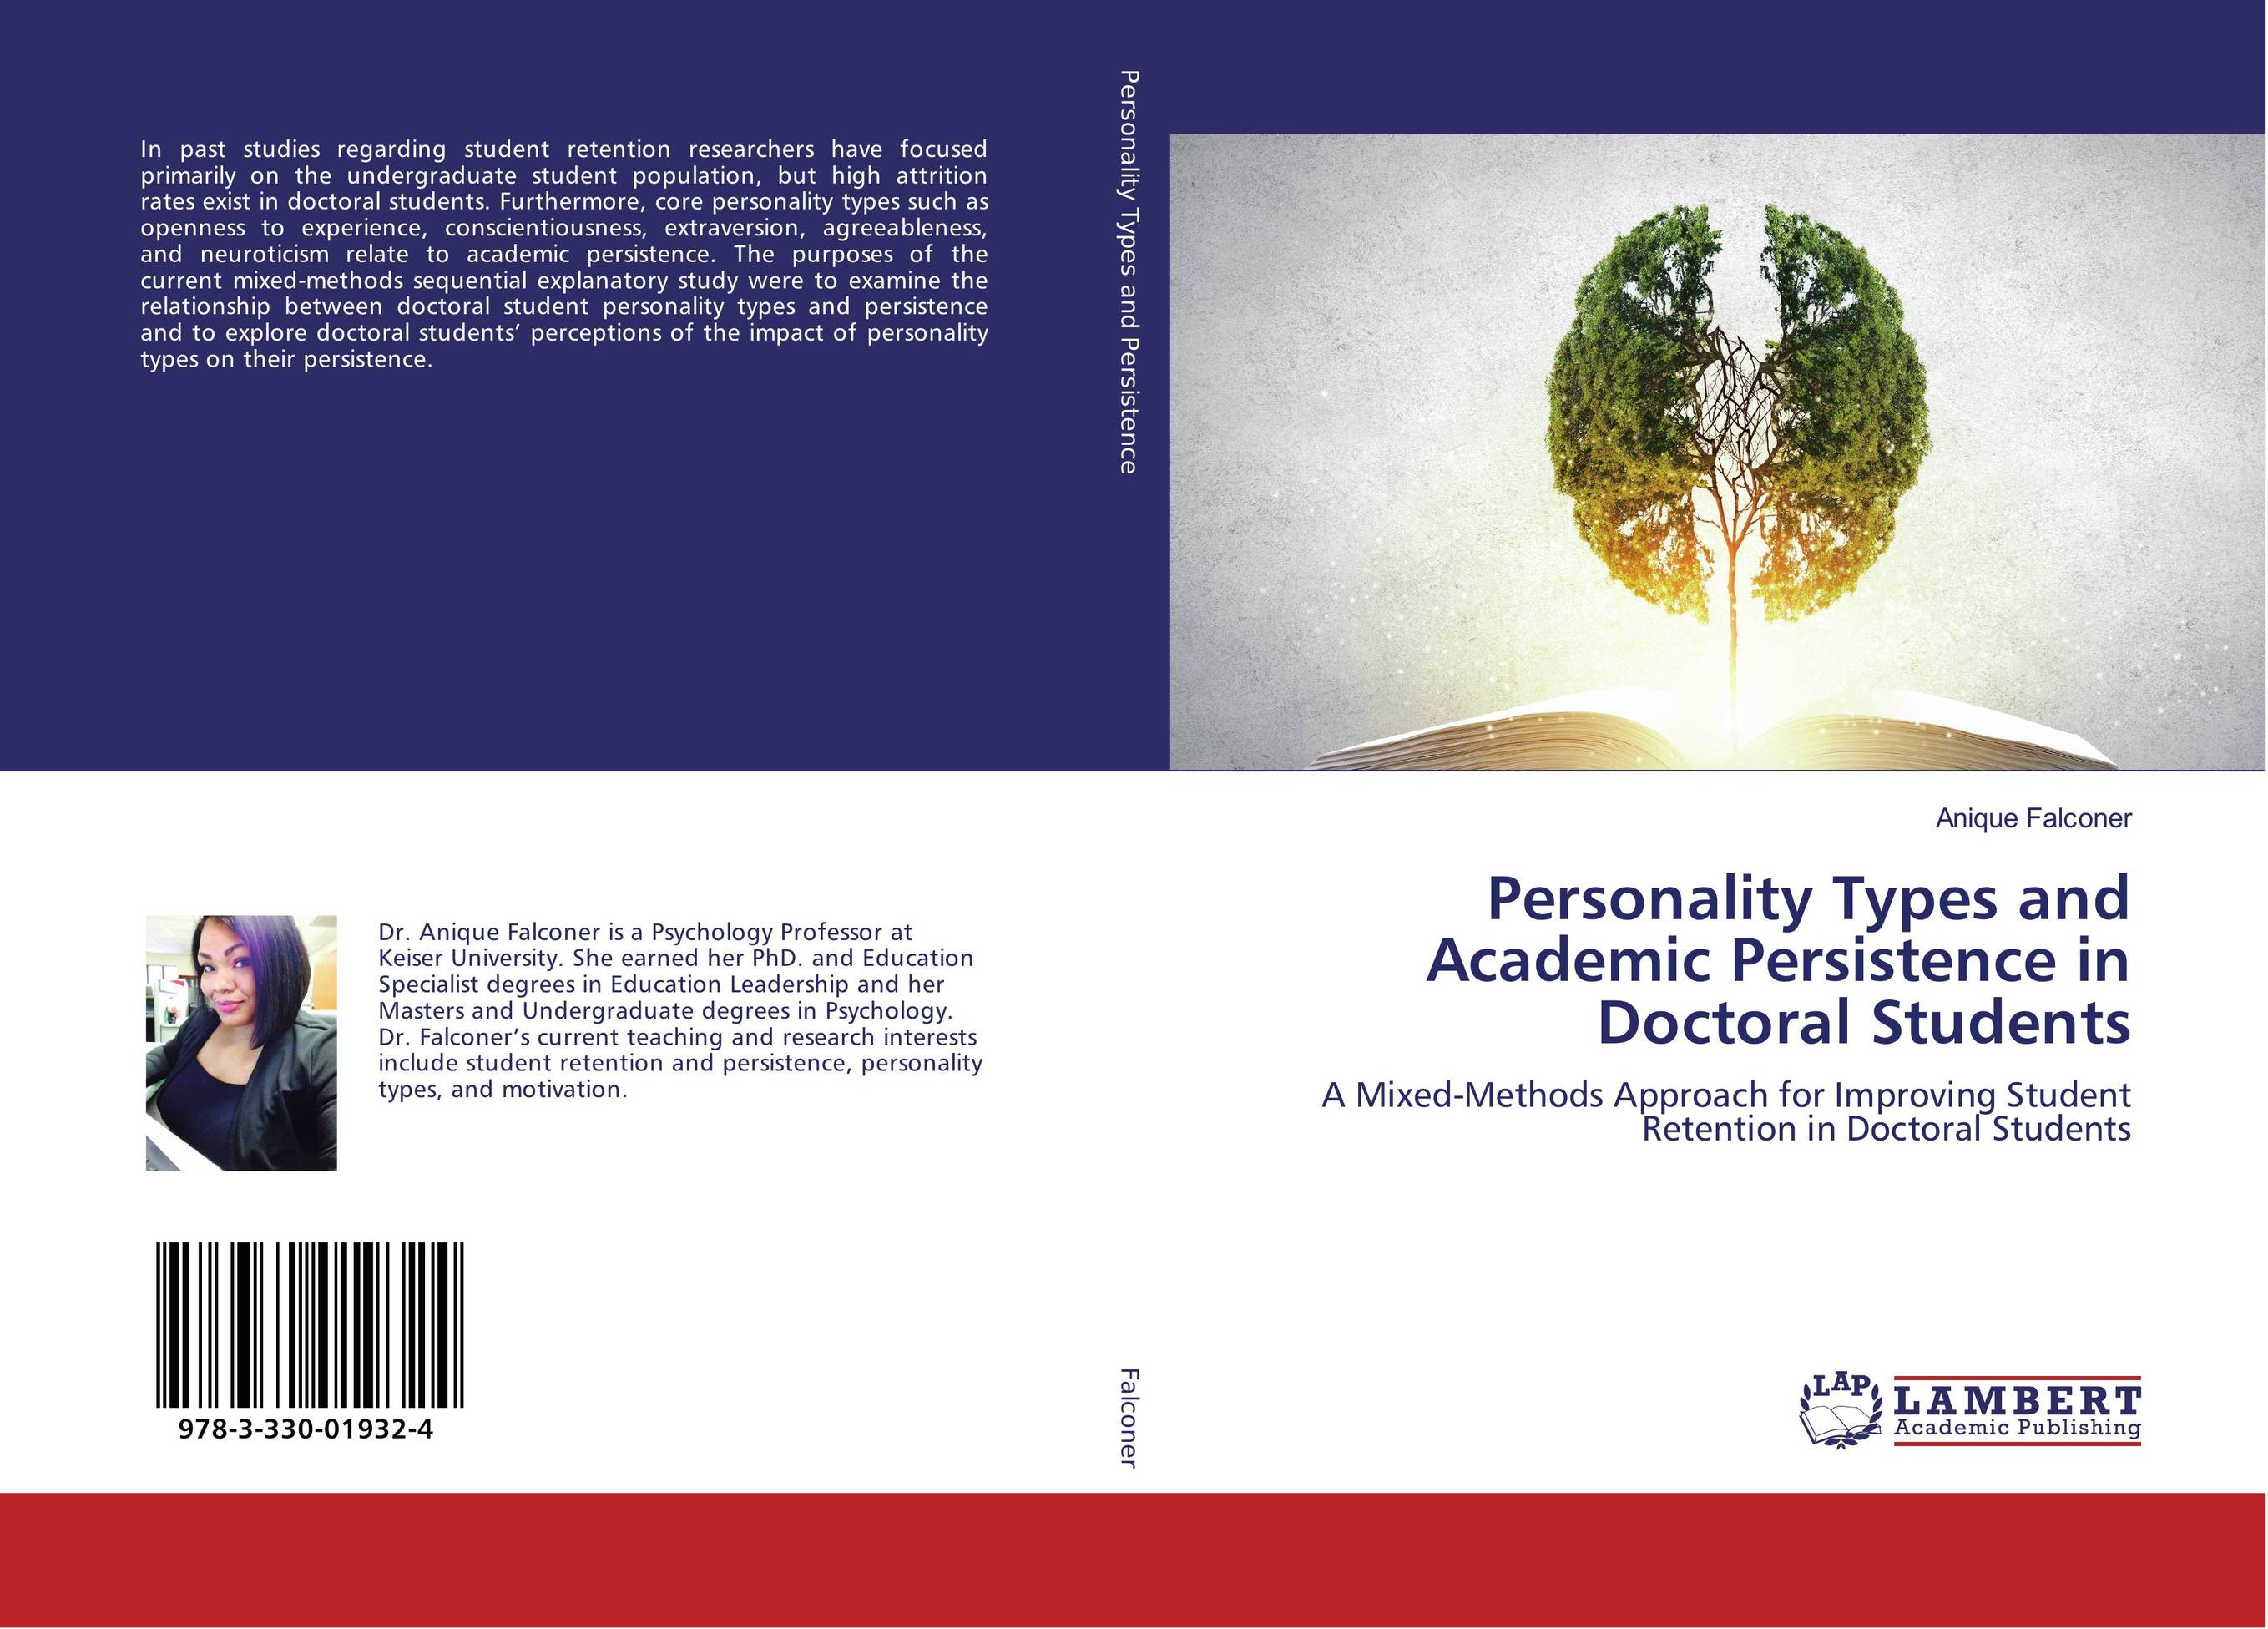 9783330019324 Personality Types and Academic Persistence in Doctoral Students